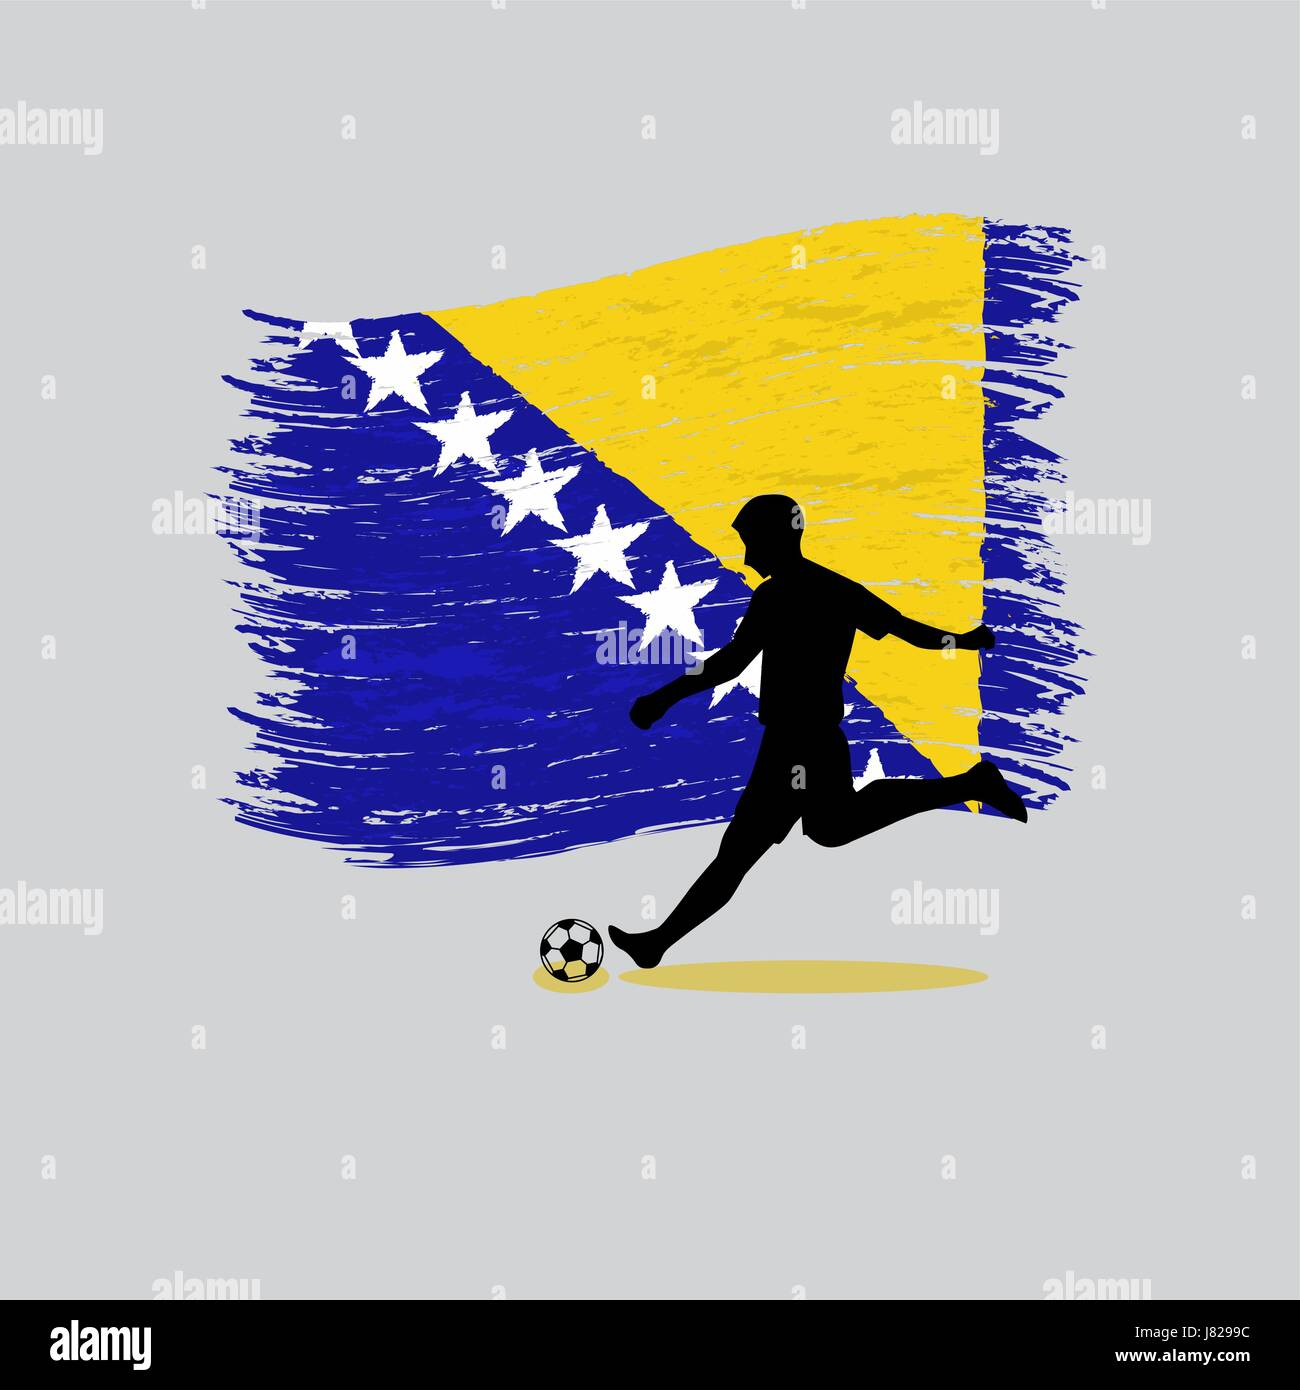 Soccer Player action with Bosnia and Herzegovina flag on background - Stock Vector